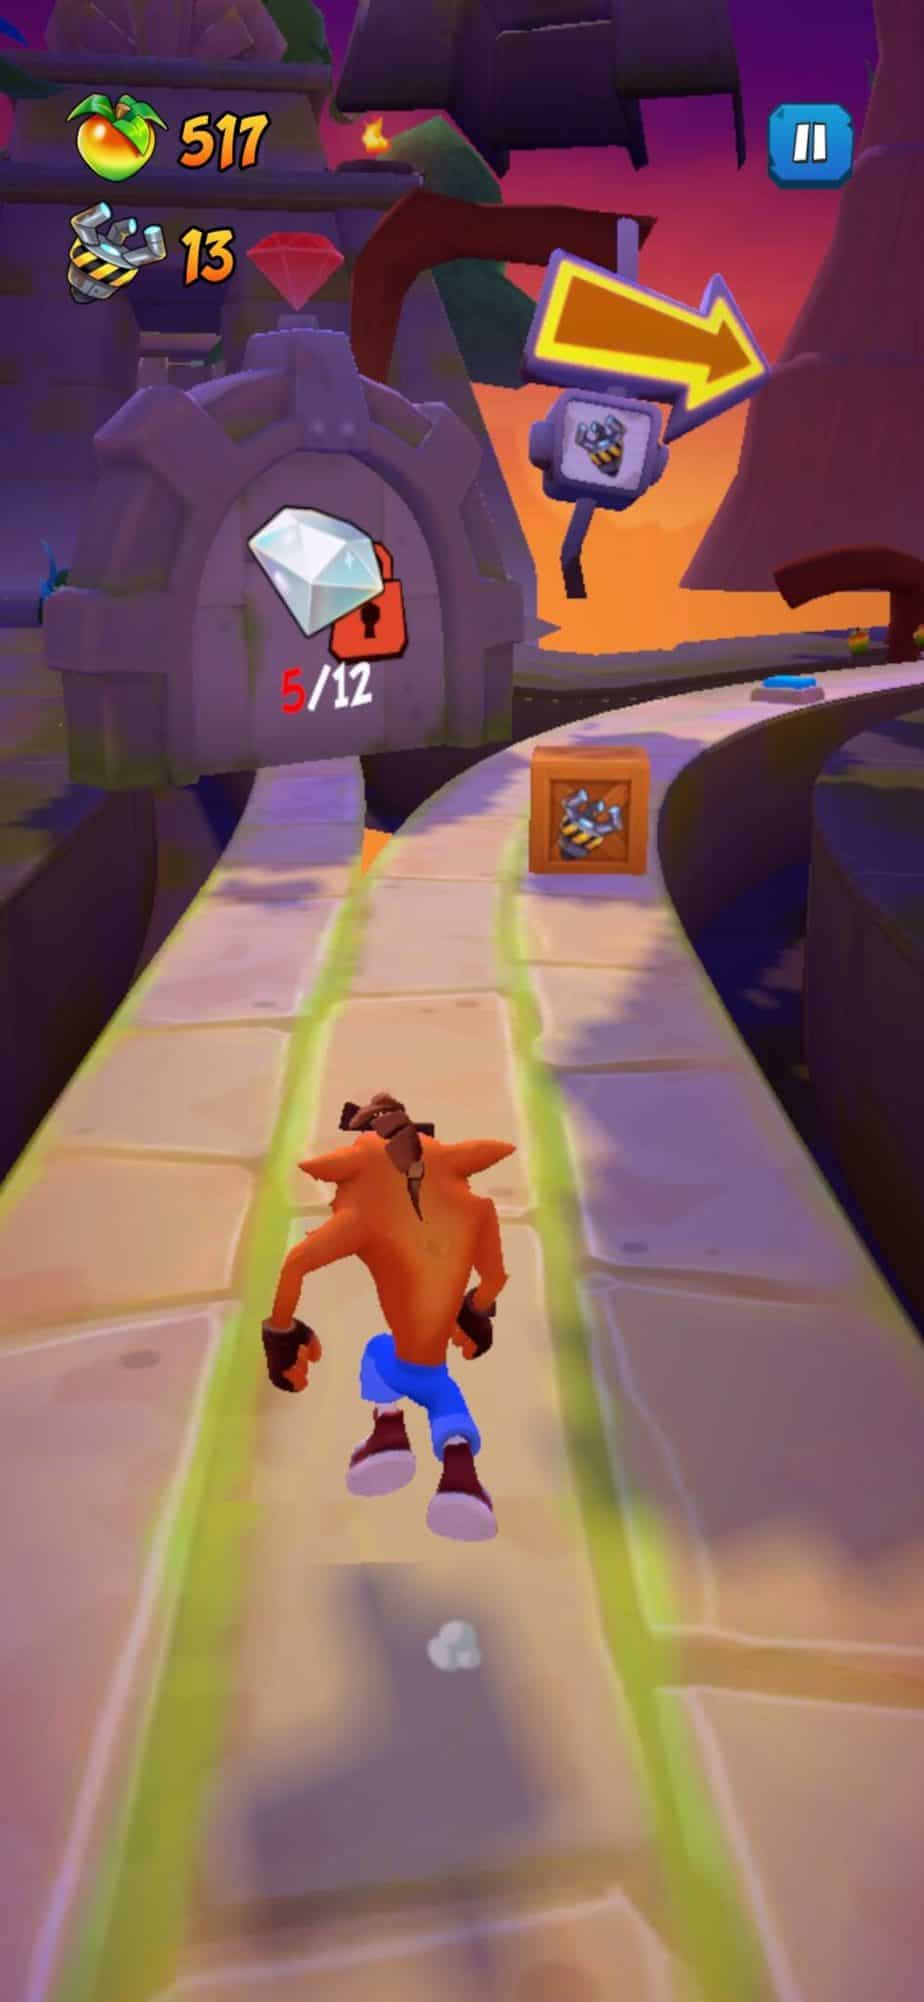 Crash Bandicoot Mobile easter egg level